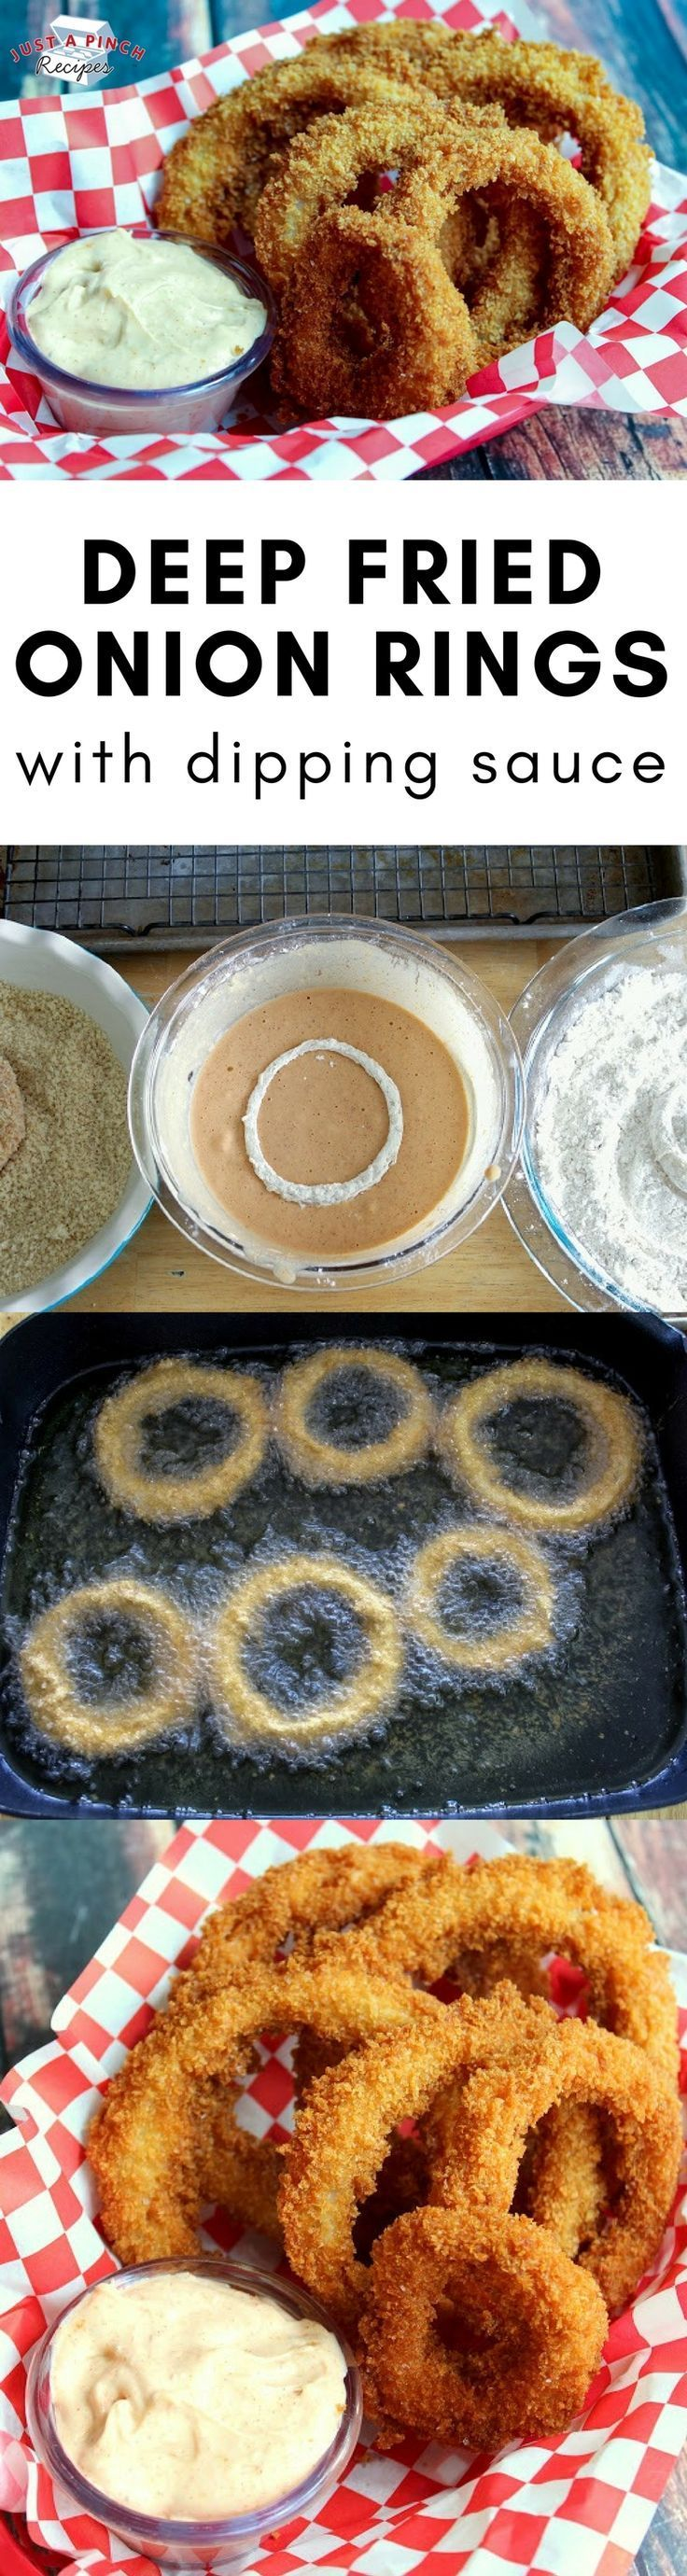 Homemade crispy onion ring recipe that is better than anything you'll have at a restaurant! #sidedish #recipesides